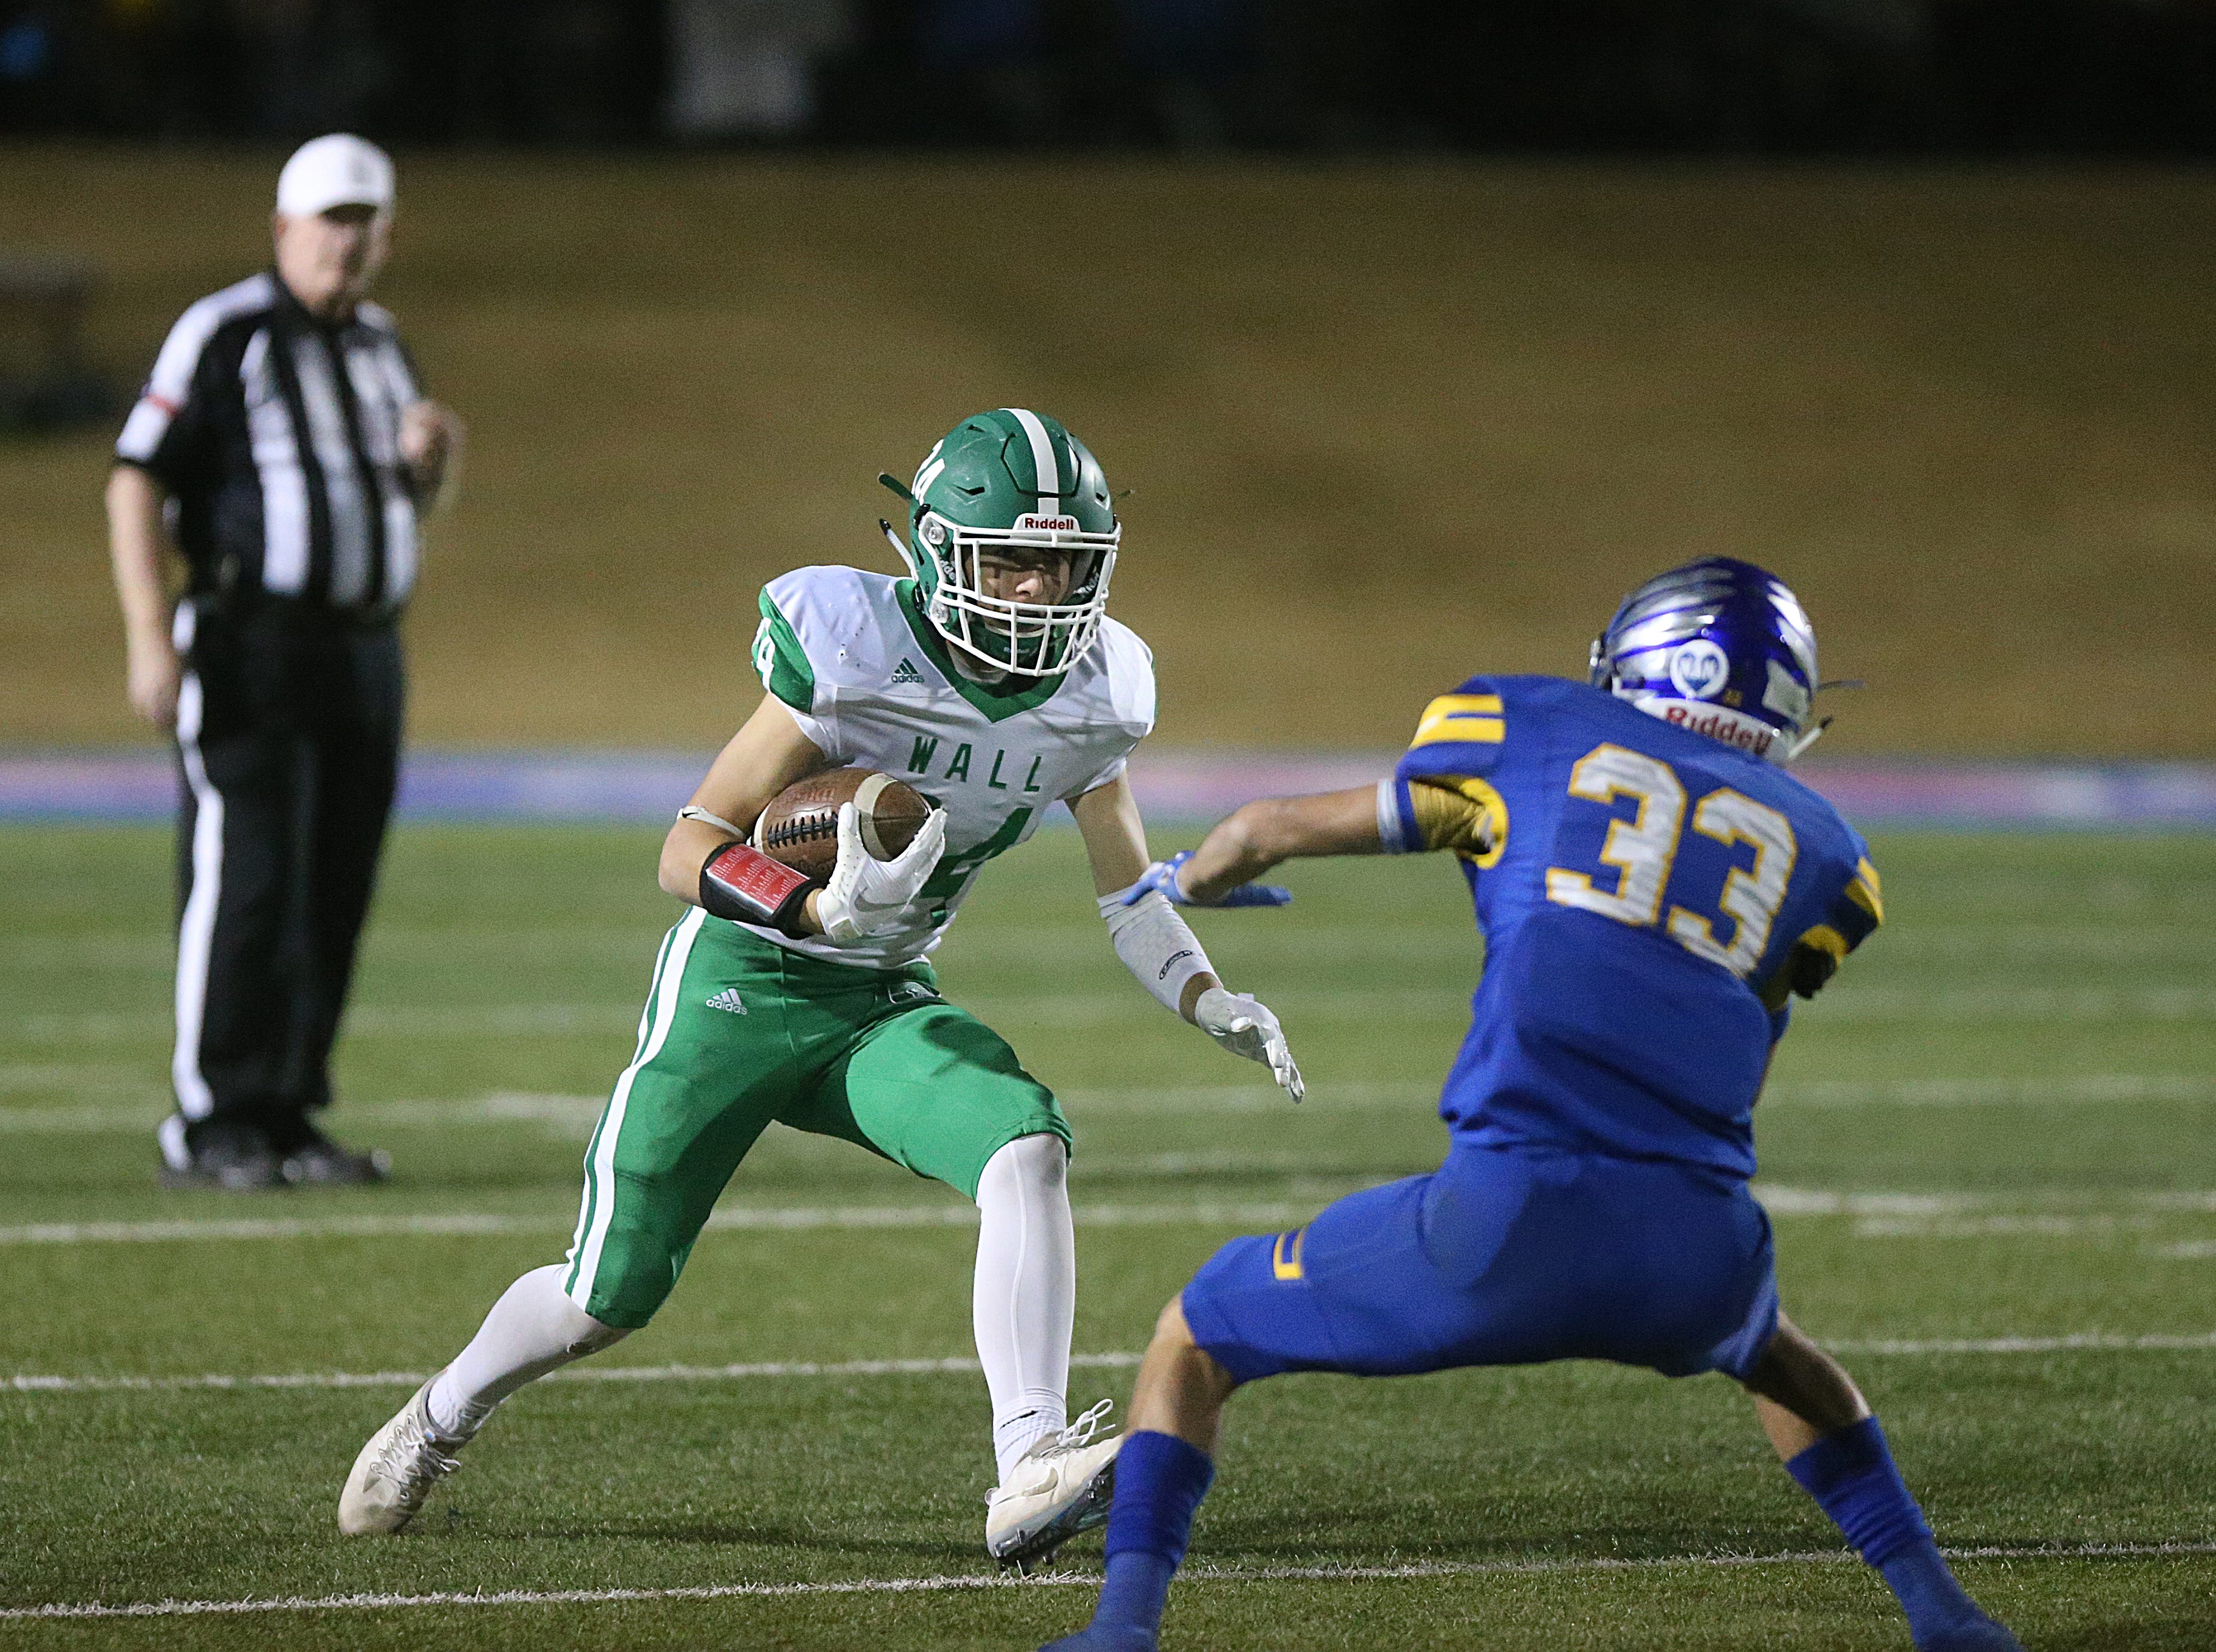 Wall's Kye Herbert (#24) tries to maneuver past Brock's Tommy Merrill (#33) Friday, Nov. 30, 2018, during their game at Shotwell Stadium in Abilene. Wall lost 13 to 35.